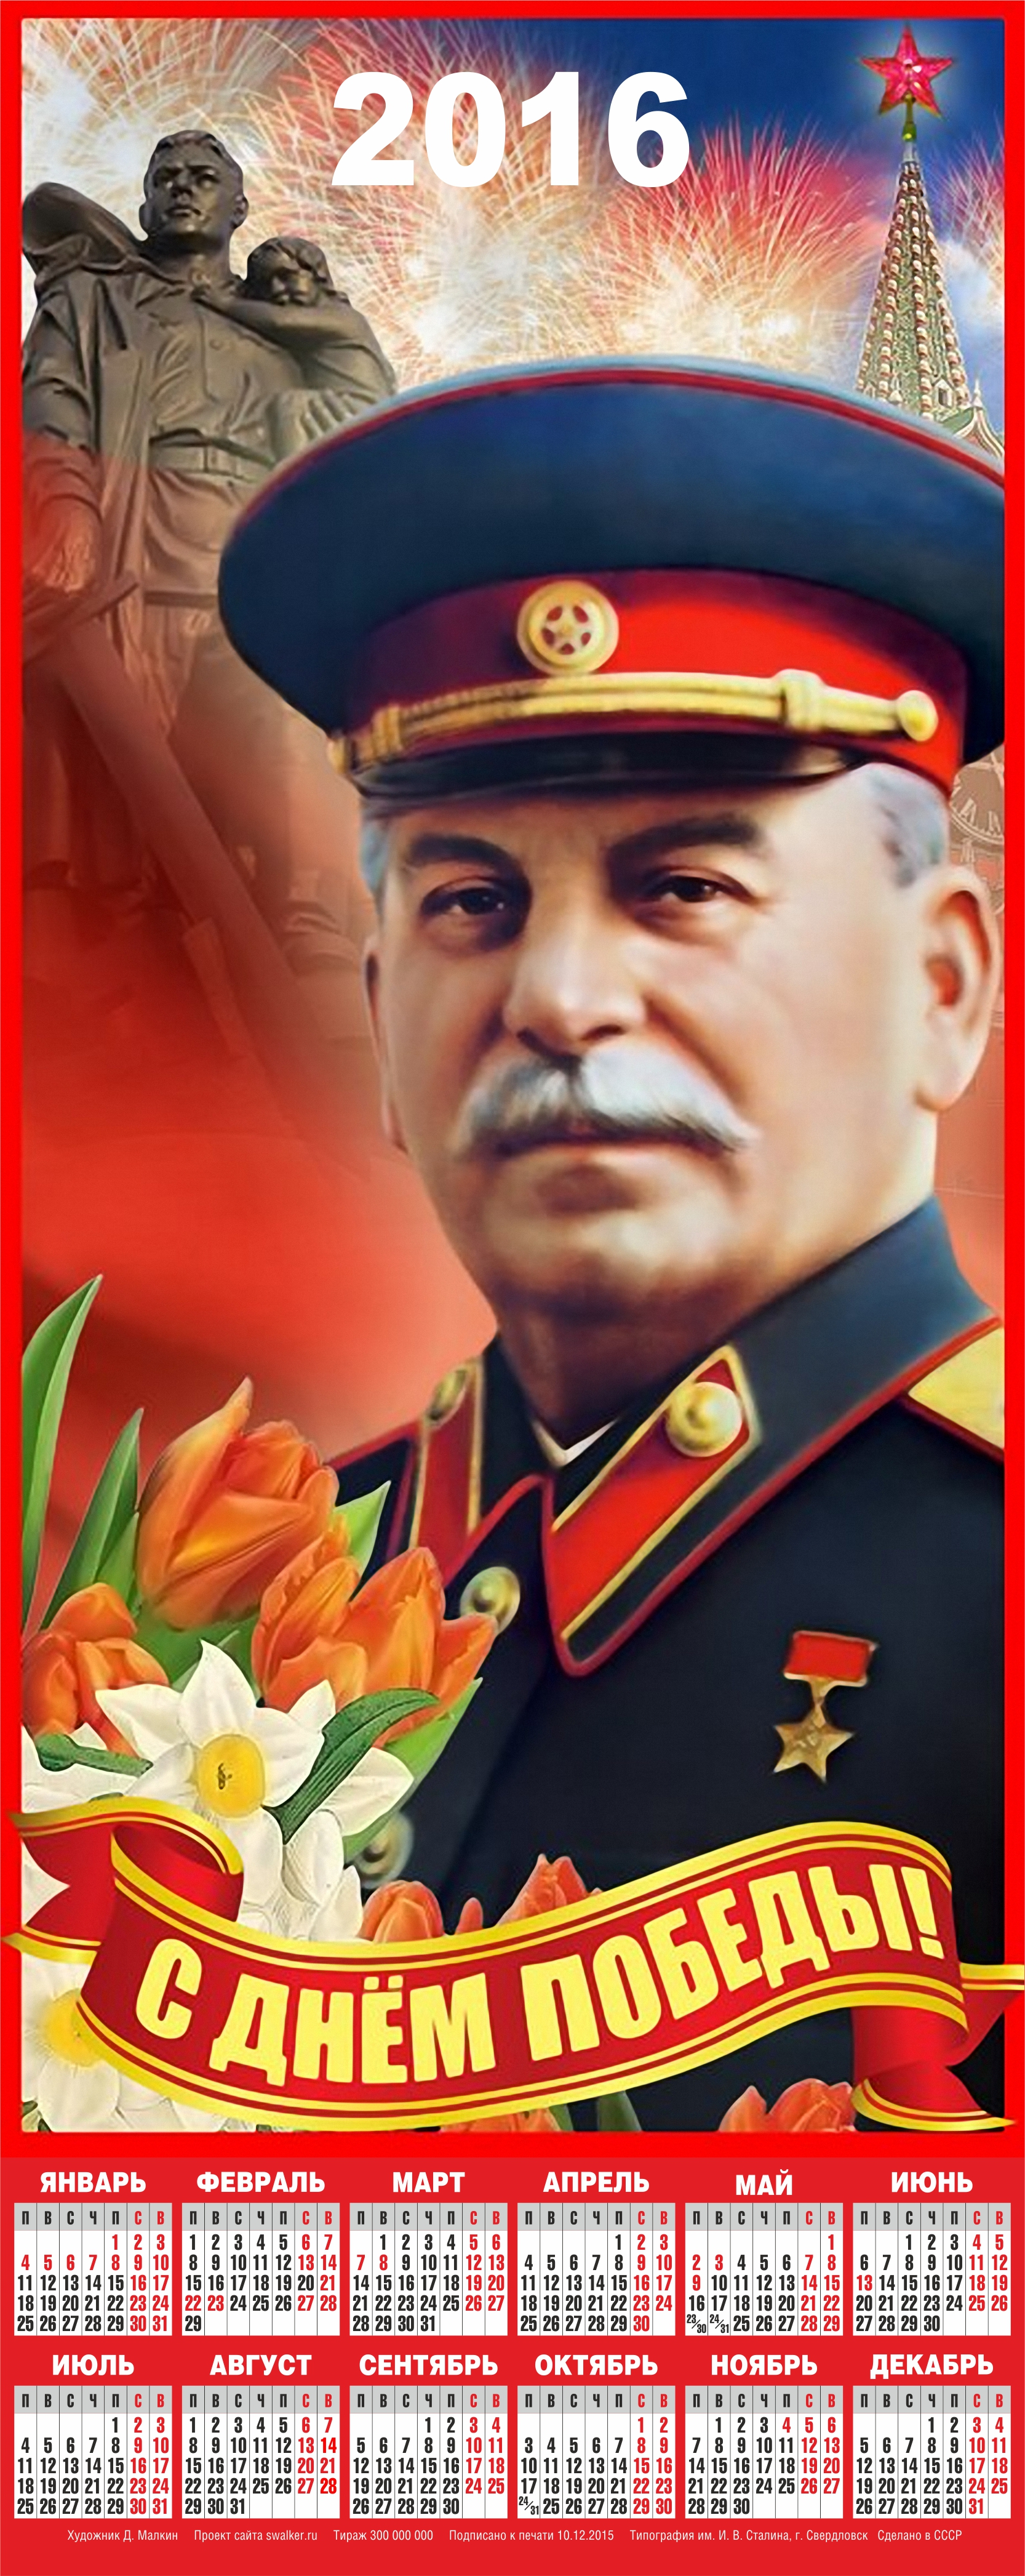 http://s02.yapfiles.ru/files/1356998/Stalin_05.jpg height=940